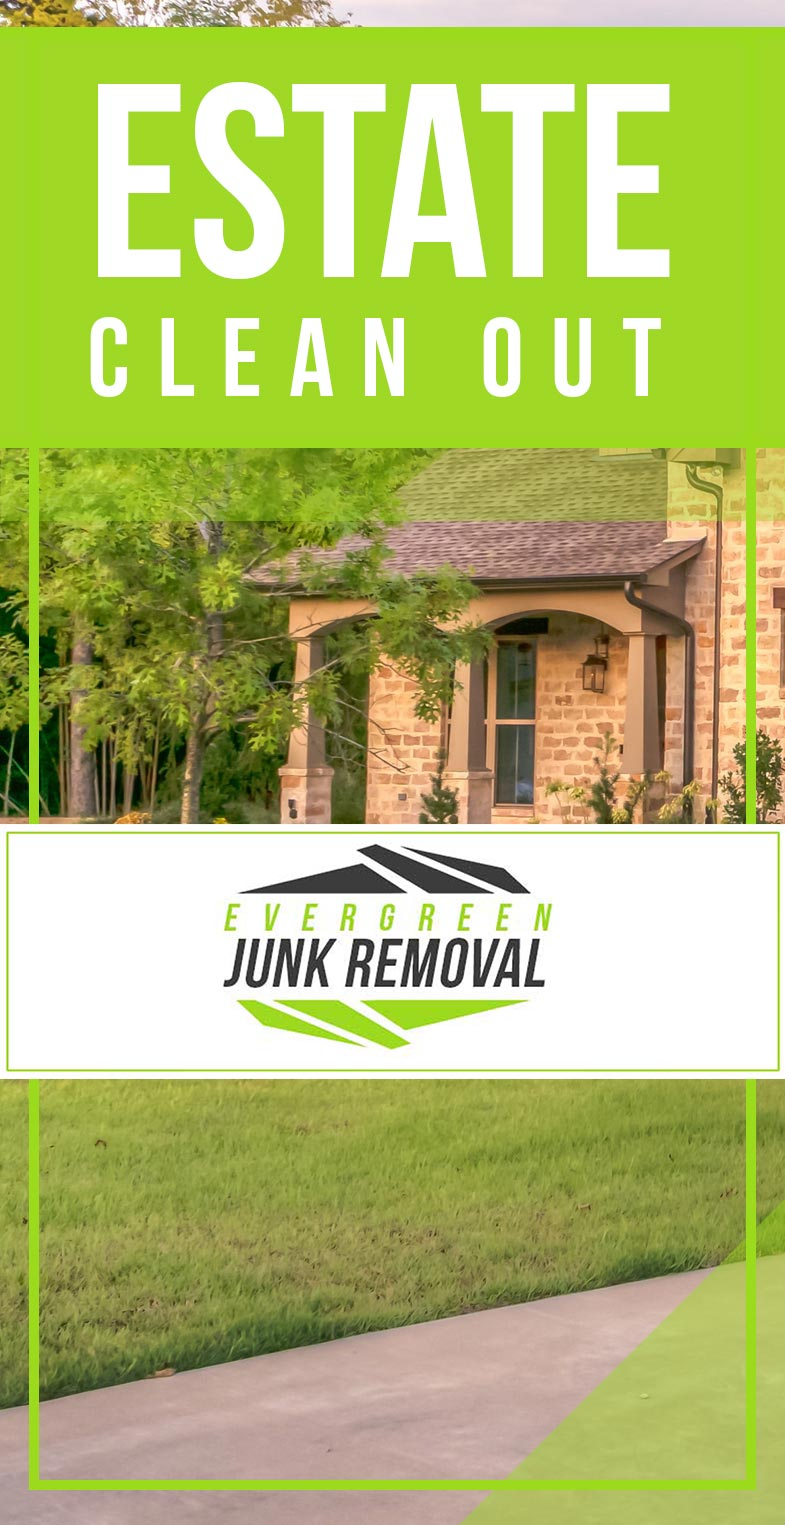 Lakeville Property Clean Out